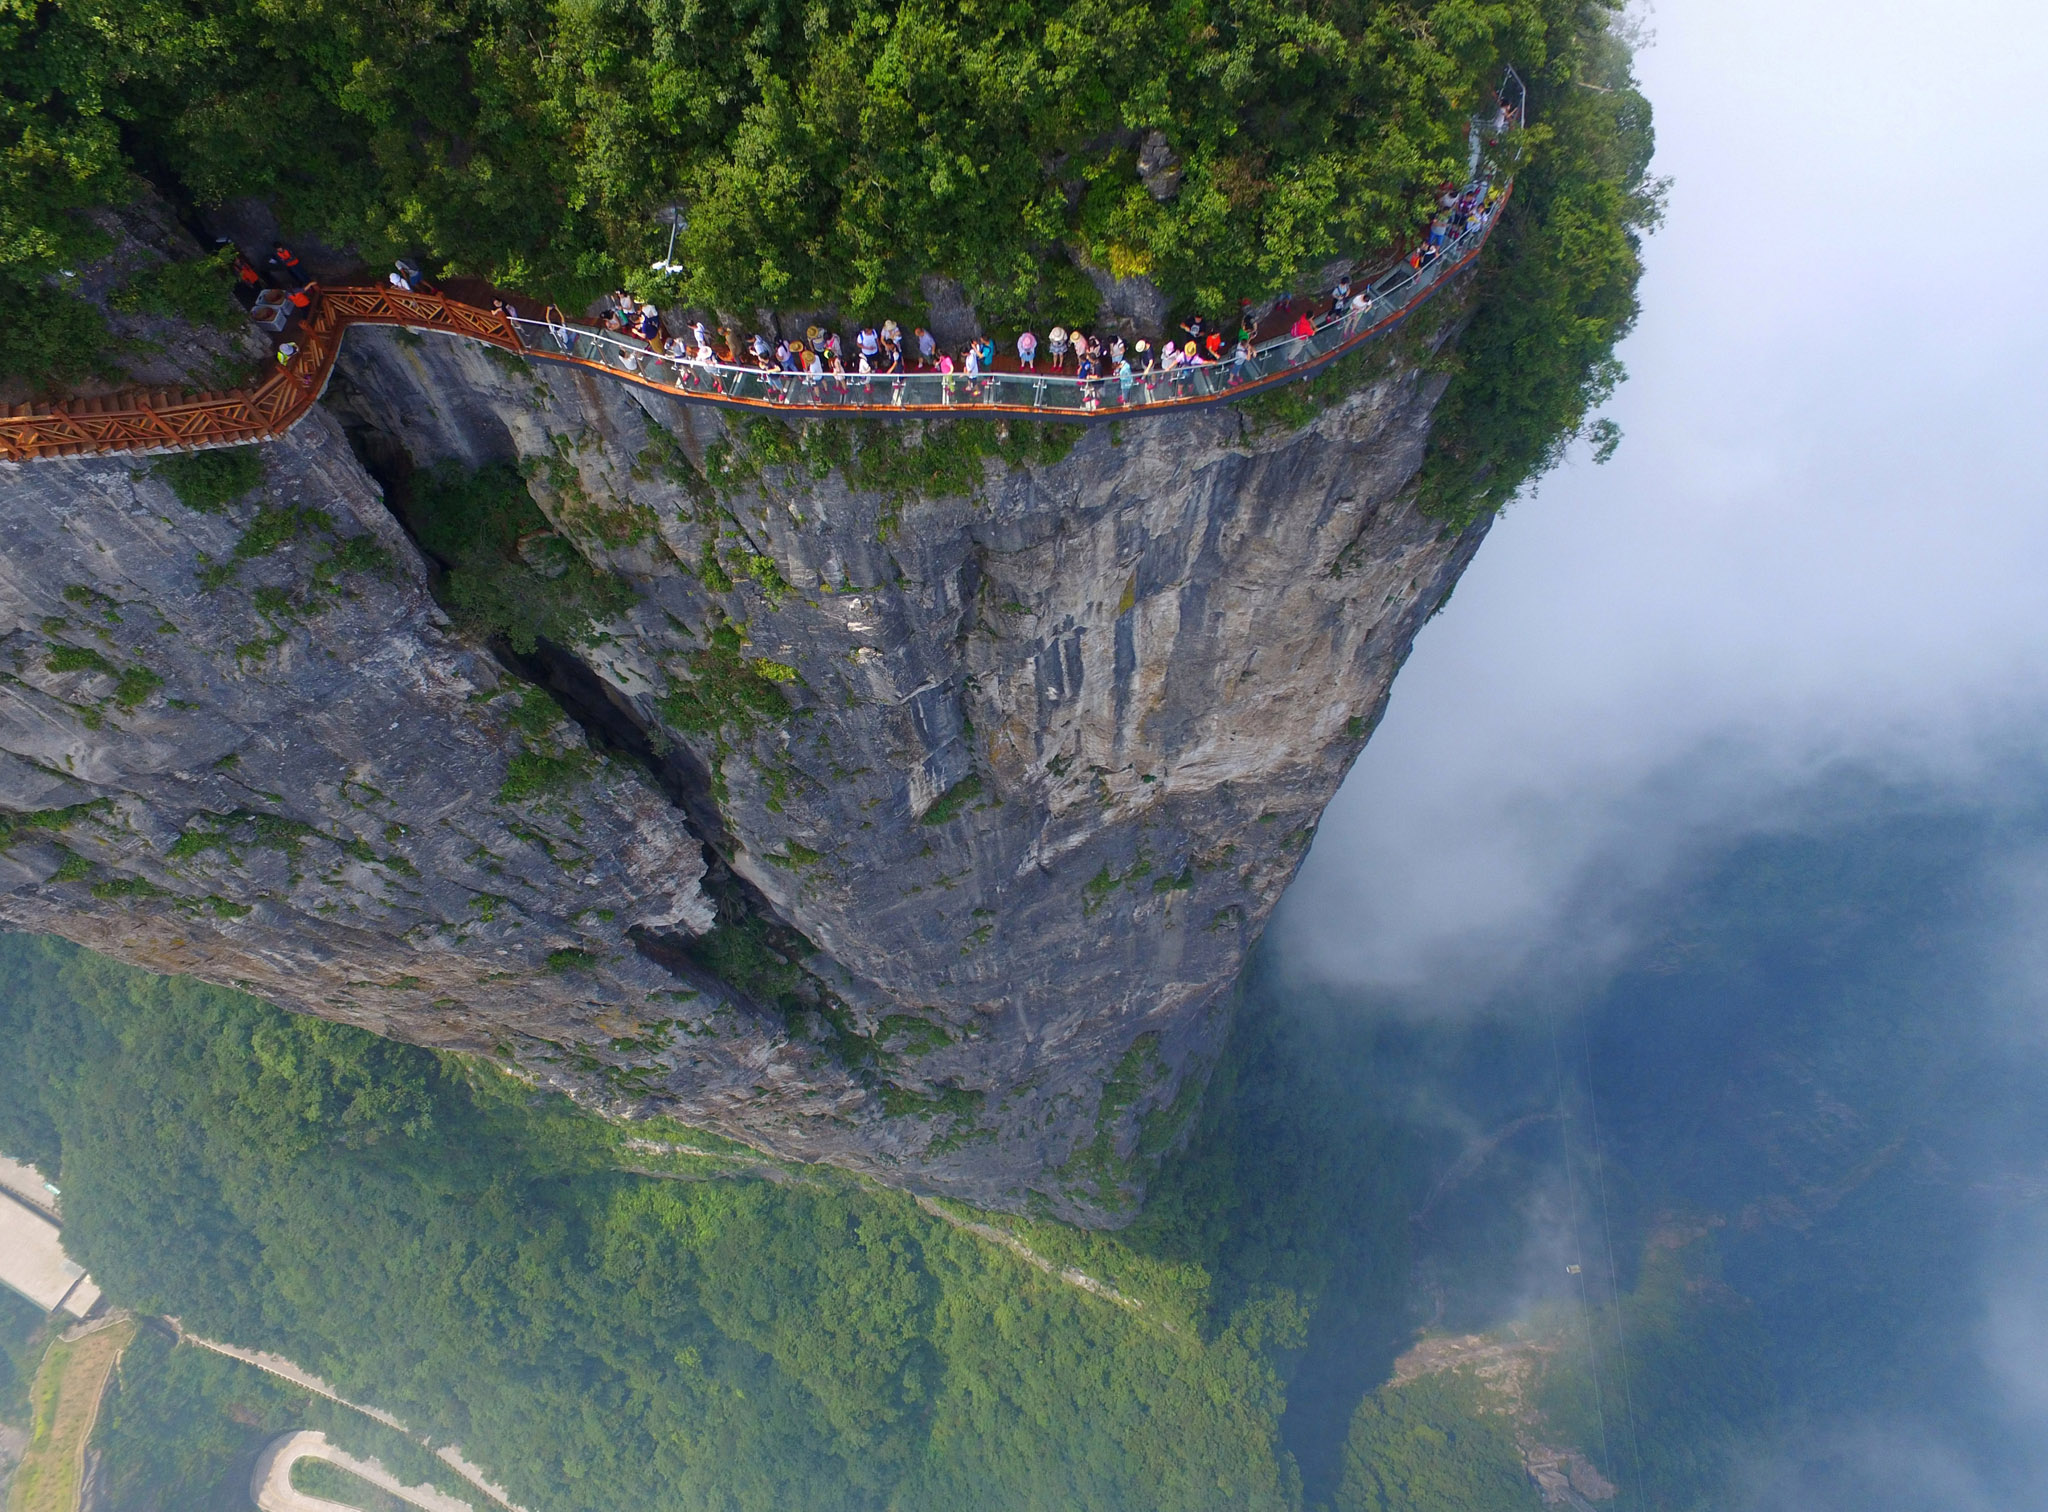 People walk on a sightseeing platform in Zhangjiajie, Hunan Province, China, August 1, 2016. REUTERS/Stringer ATTENTION EDITORS - THIS IMAGE WAS PROVIDED BY A THIRD PARTY. EDITORIAL USE ONLY. CHINA OUT. NO COMMERCIAL OR EDITORIAL SALES IN CHINA.